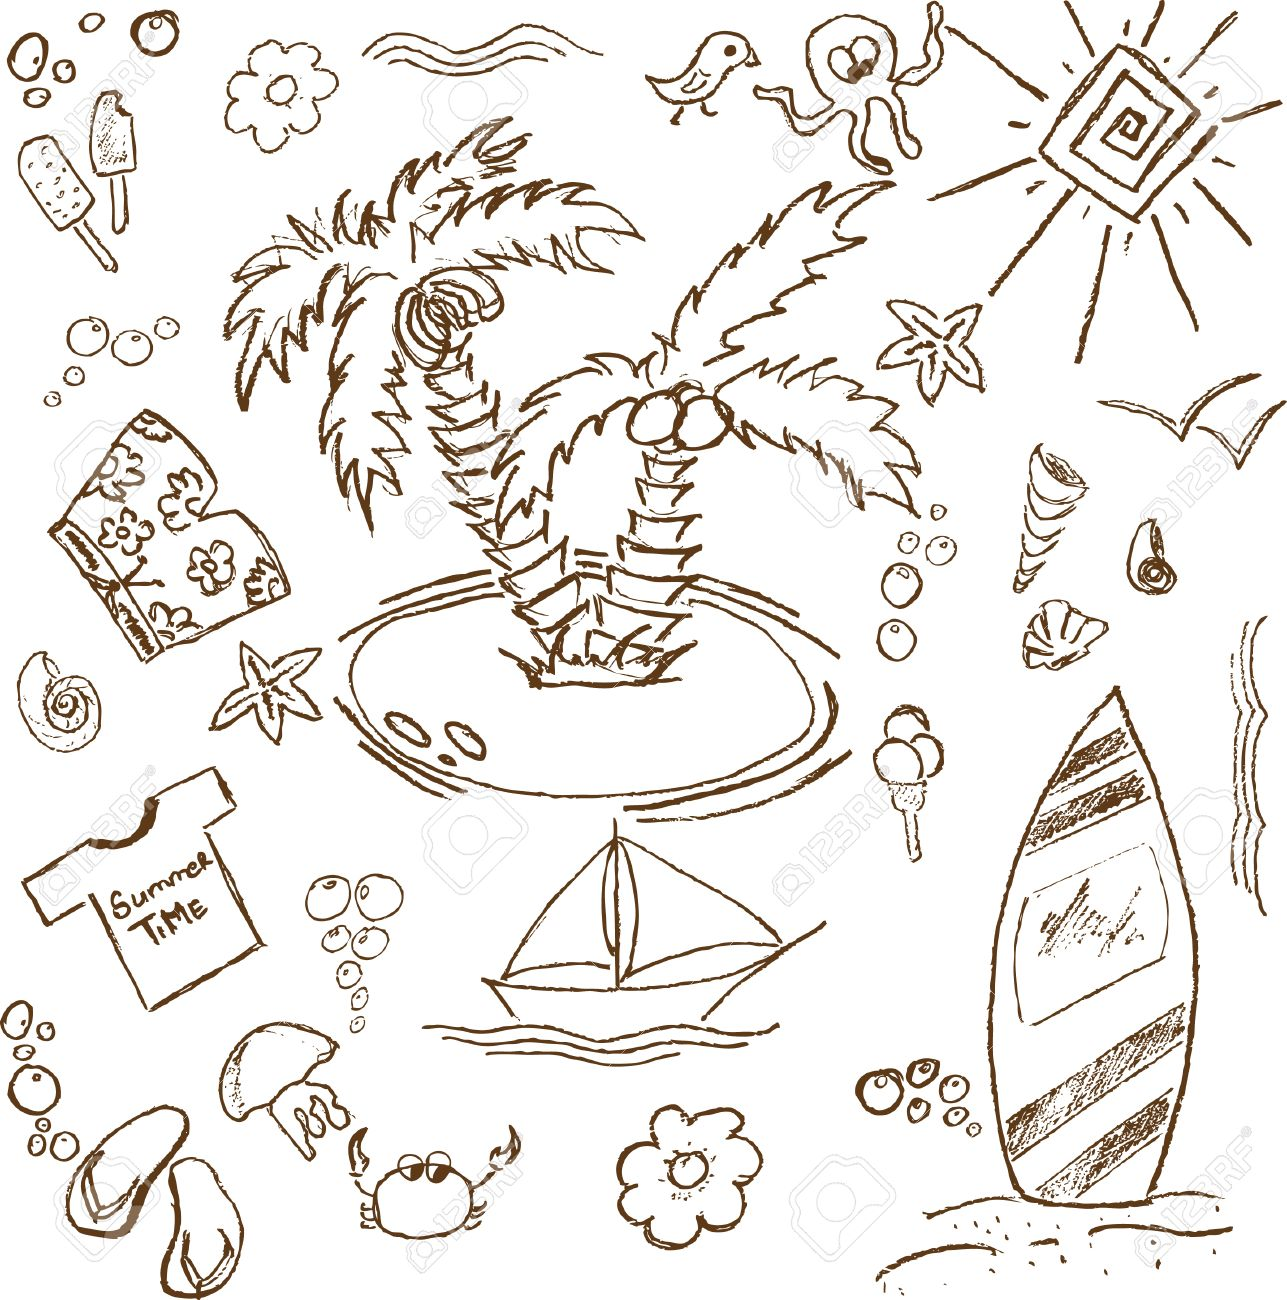 full page of fun hand draw doodles on a summer theme royalty free